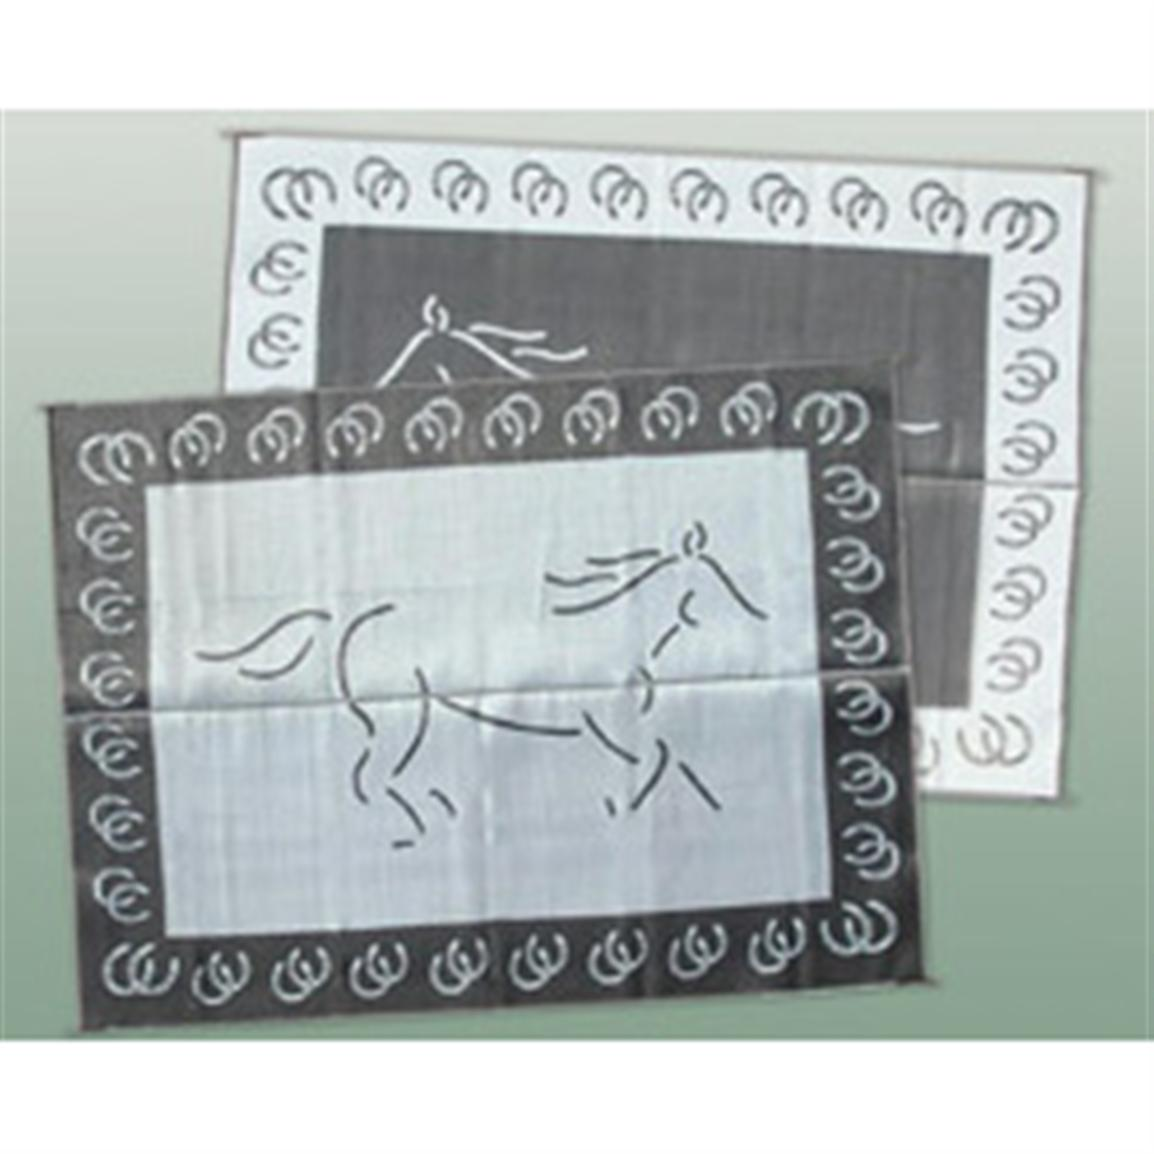 Patio Mats 9x12' Reversible Mat, Horse Design